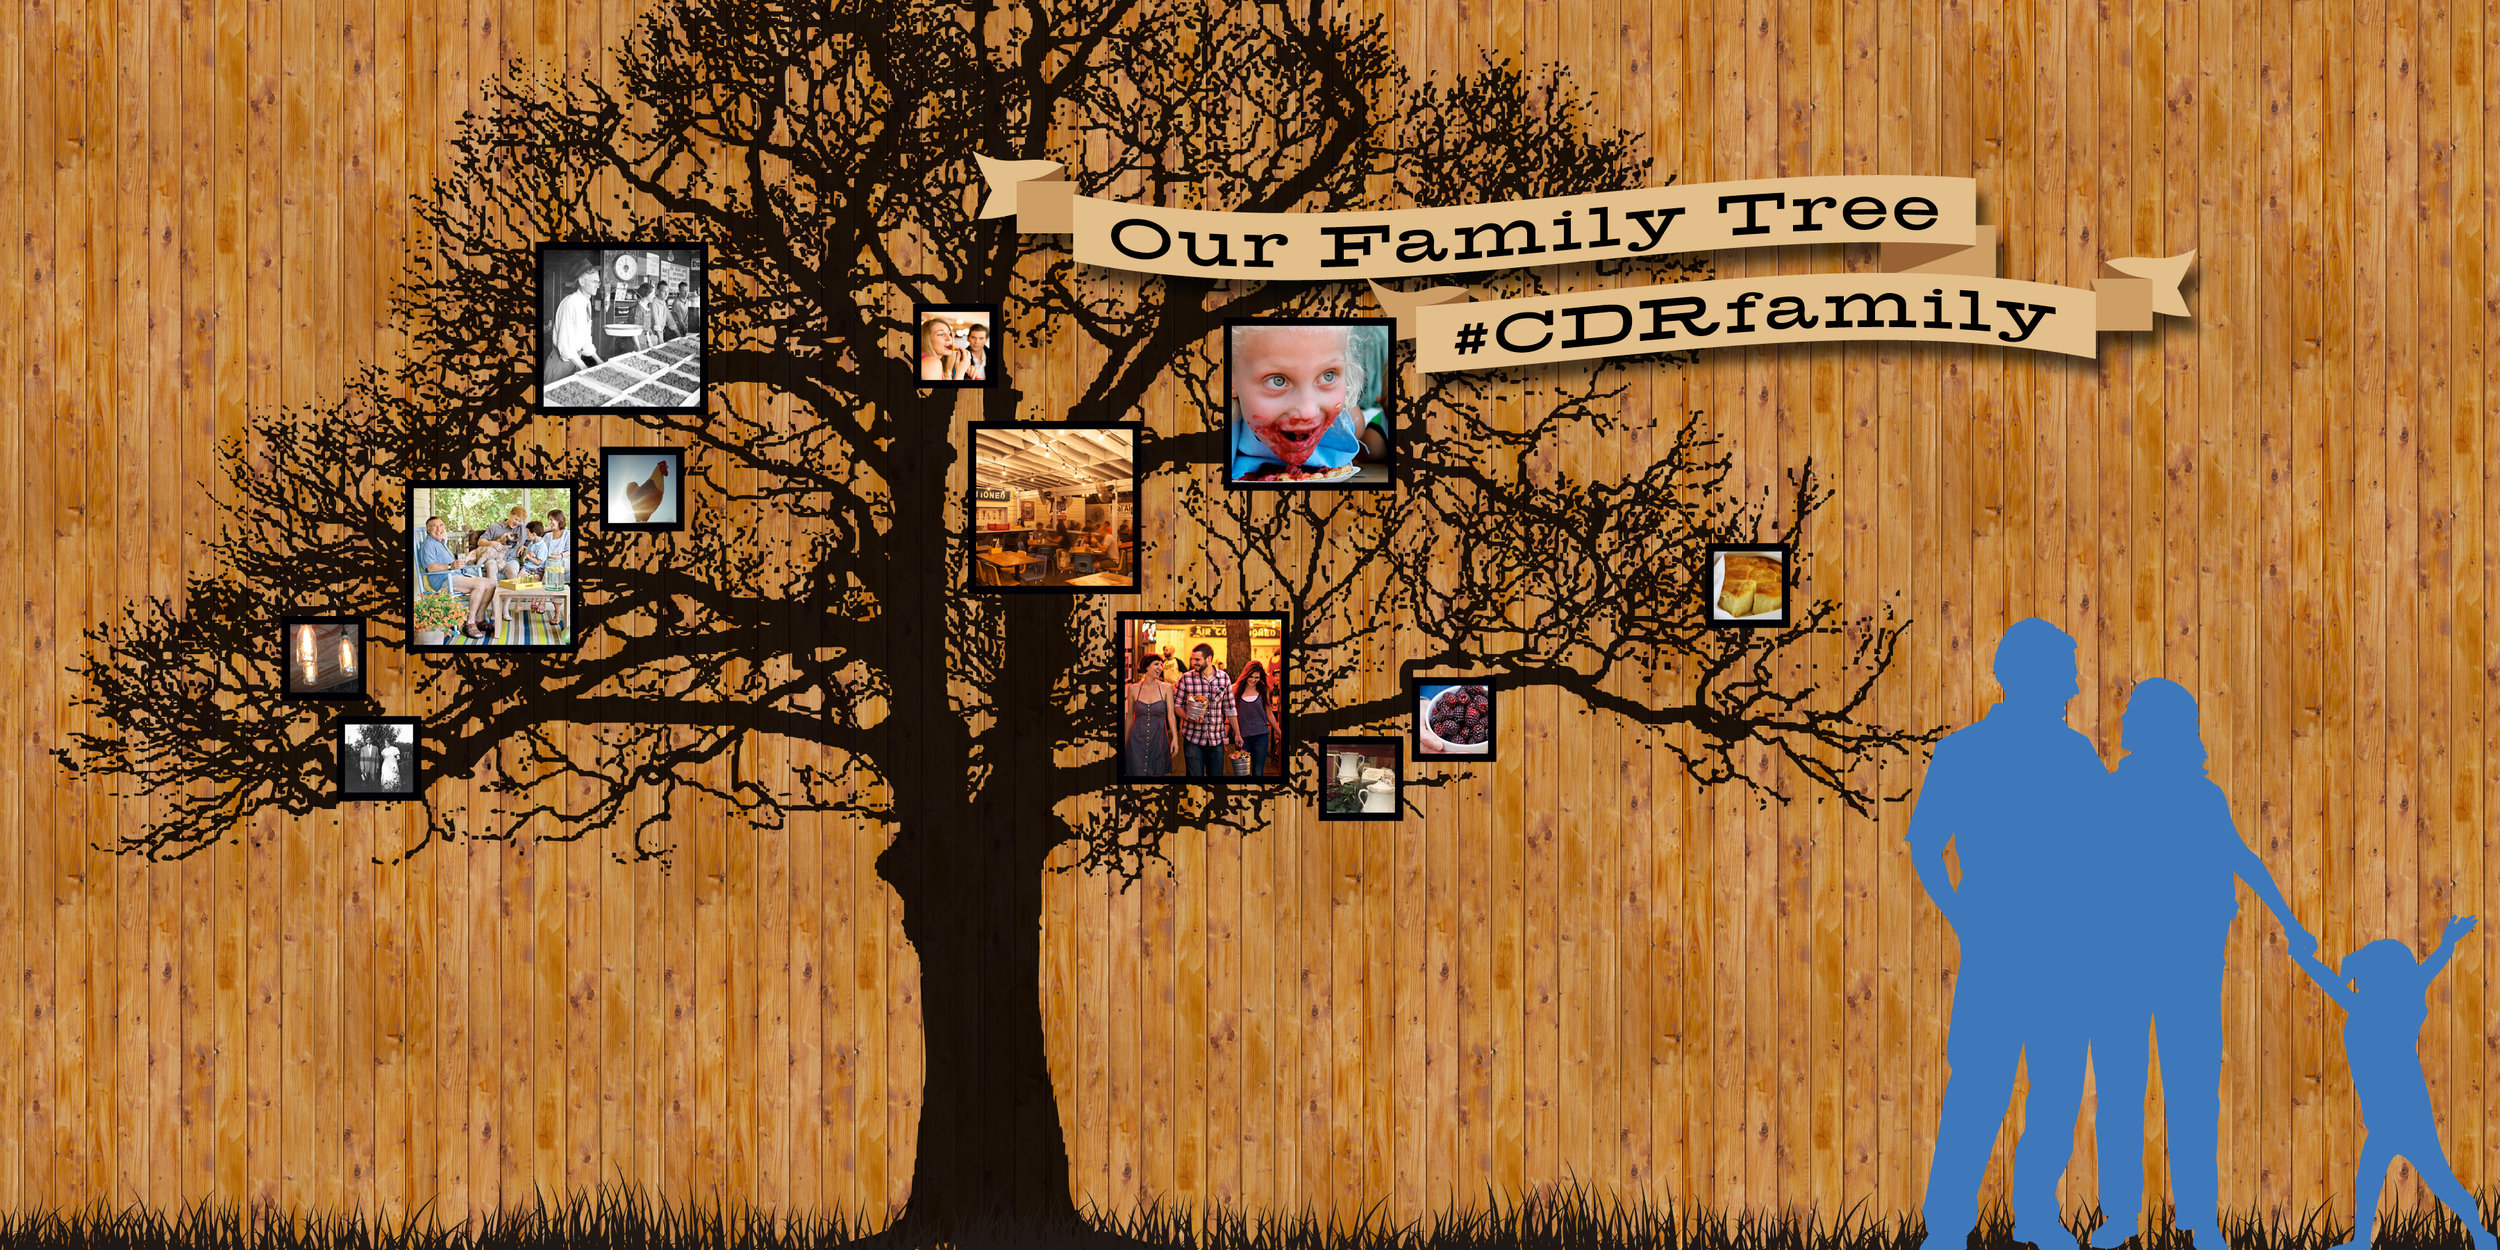 CDR Instagram Family Tree Wall_r01.jpg